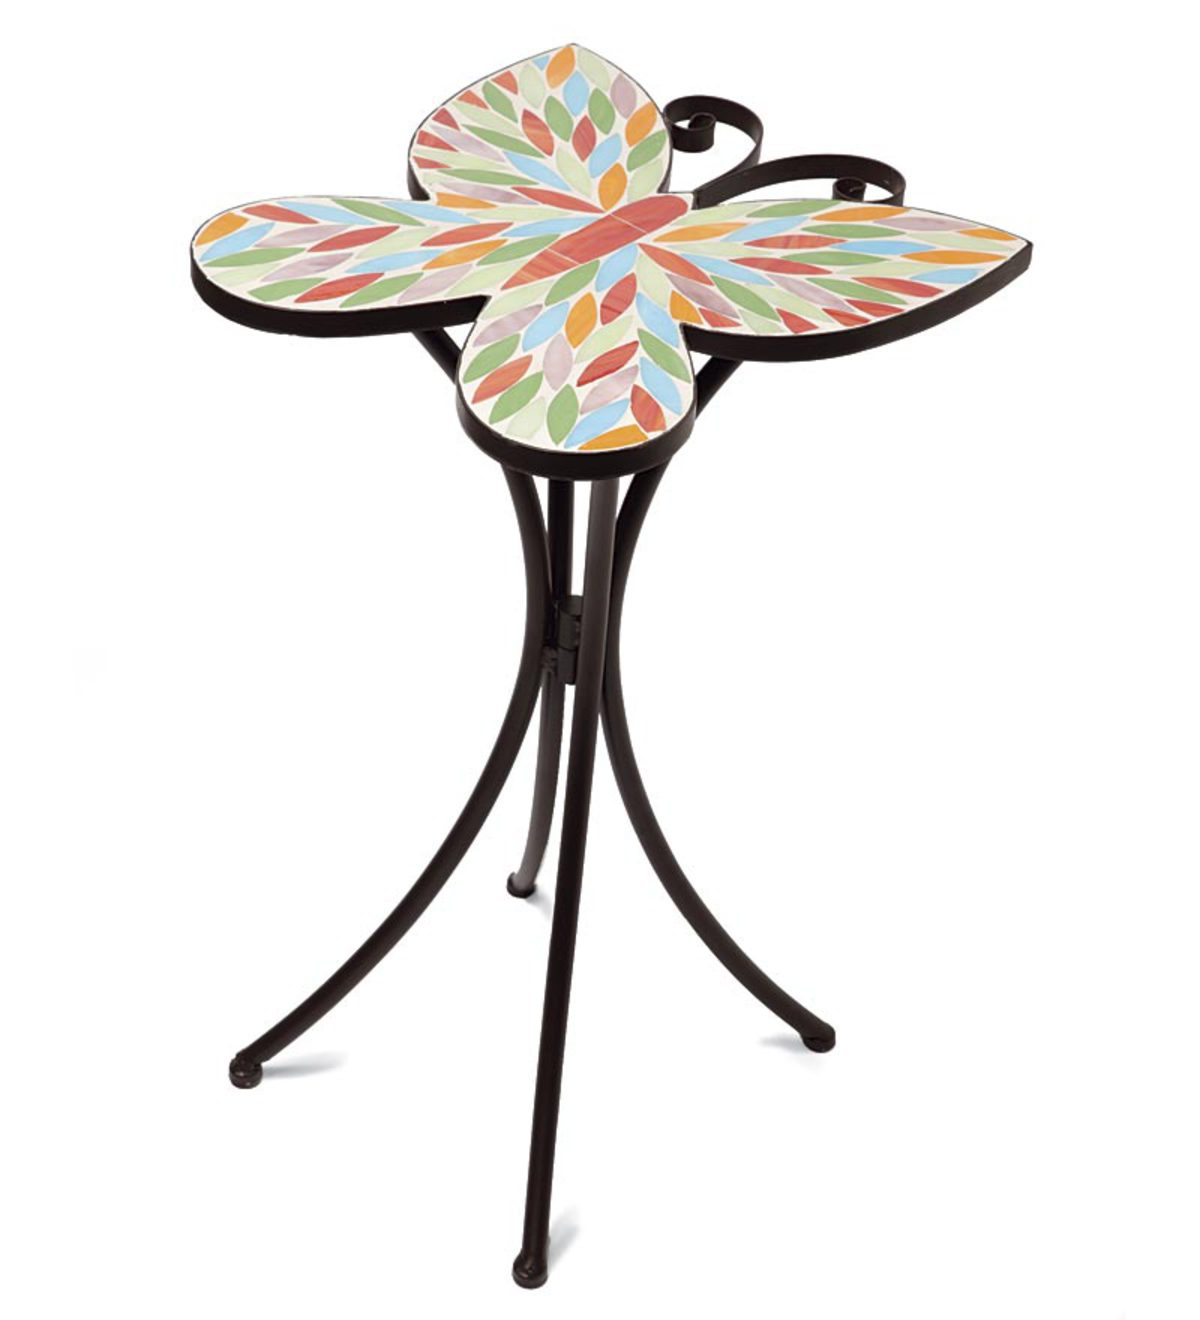 butterfly and flower stained glass mosaic accent table plowhearth stool plastic patio chairs monarch hall console target threshold chair small round mirror retro very nightstand